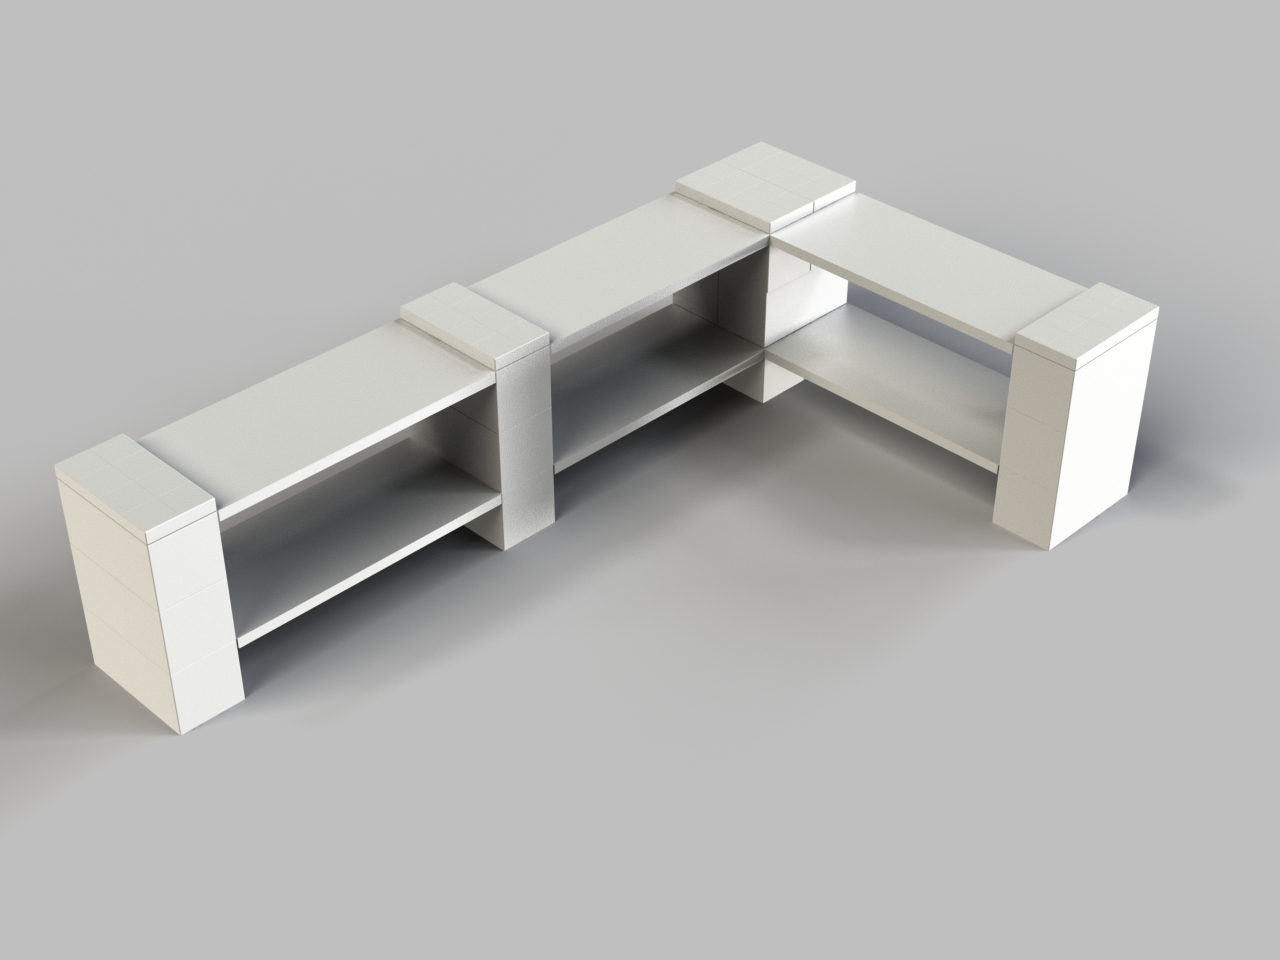 2 Level Double Corner Shelf B